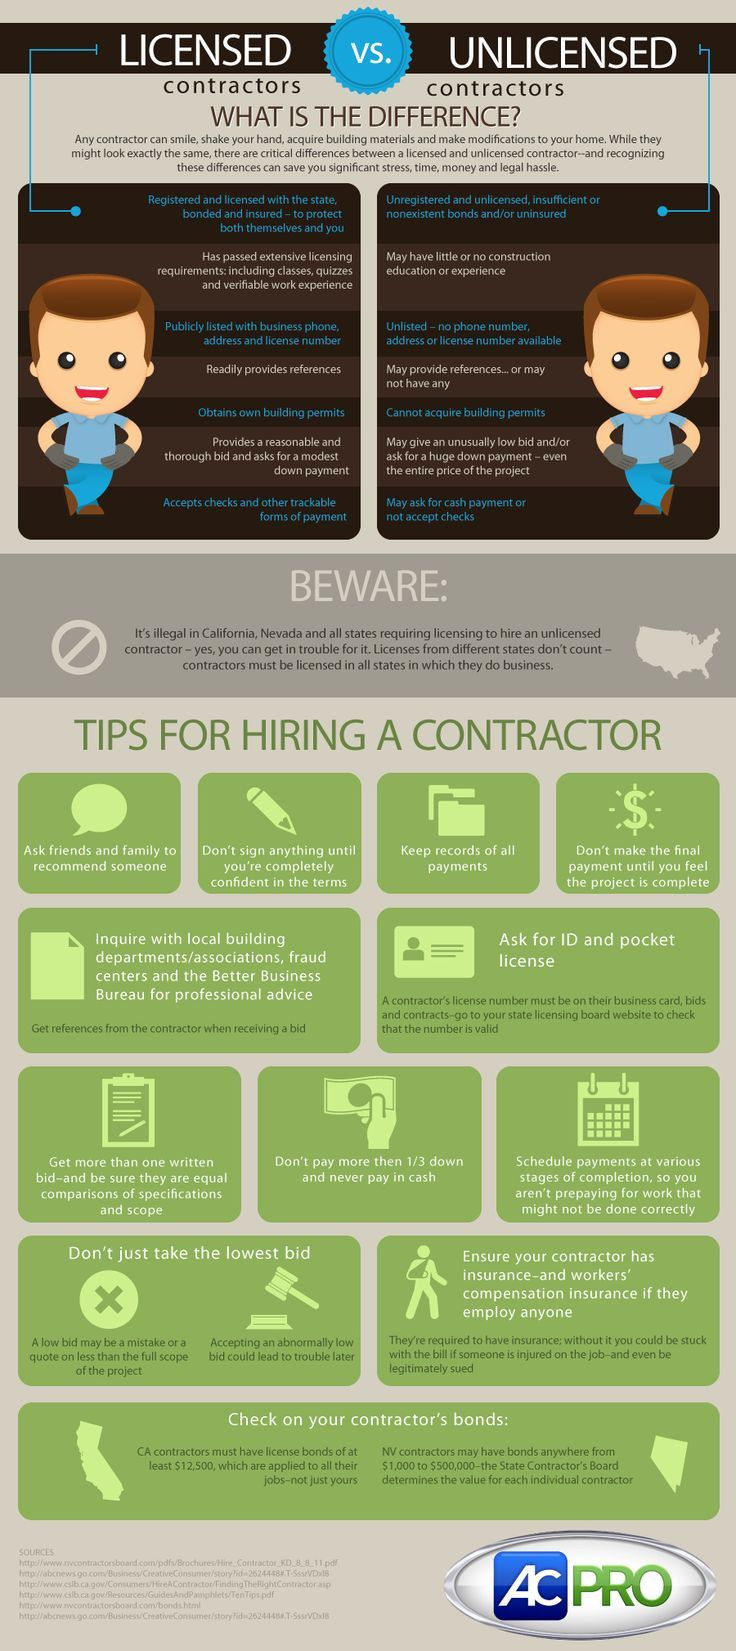 Beware It S Illegal In California And All States Requiring Licensing To Hire An Un Home Remodeling Contractors Home Improvement Loans Remodeling Contractors